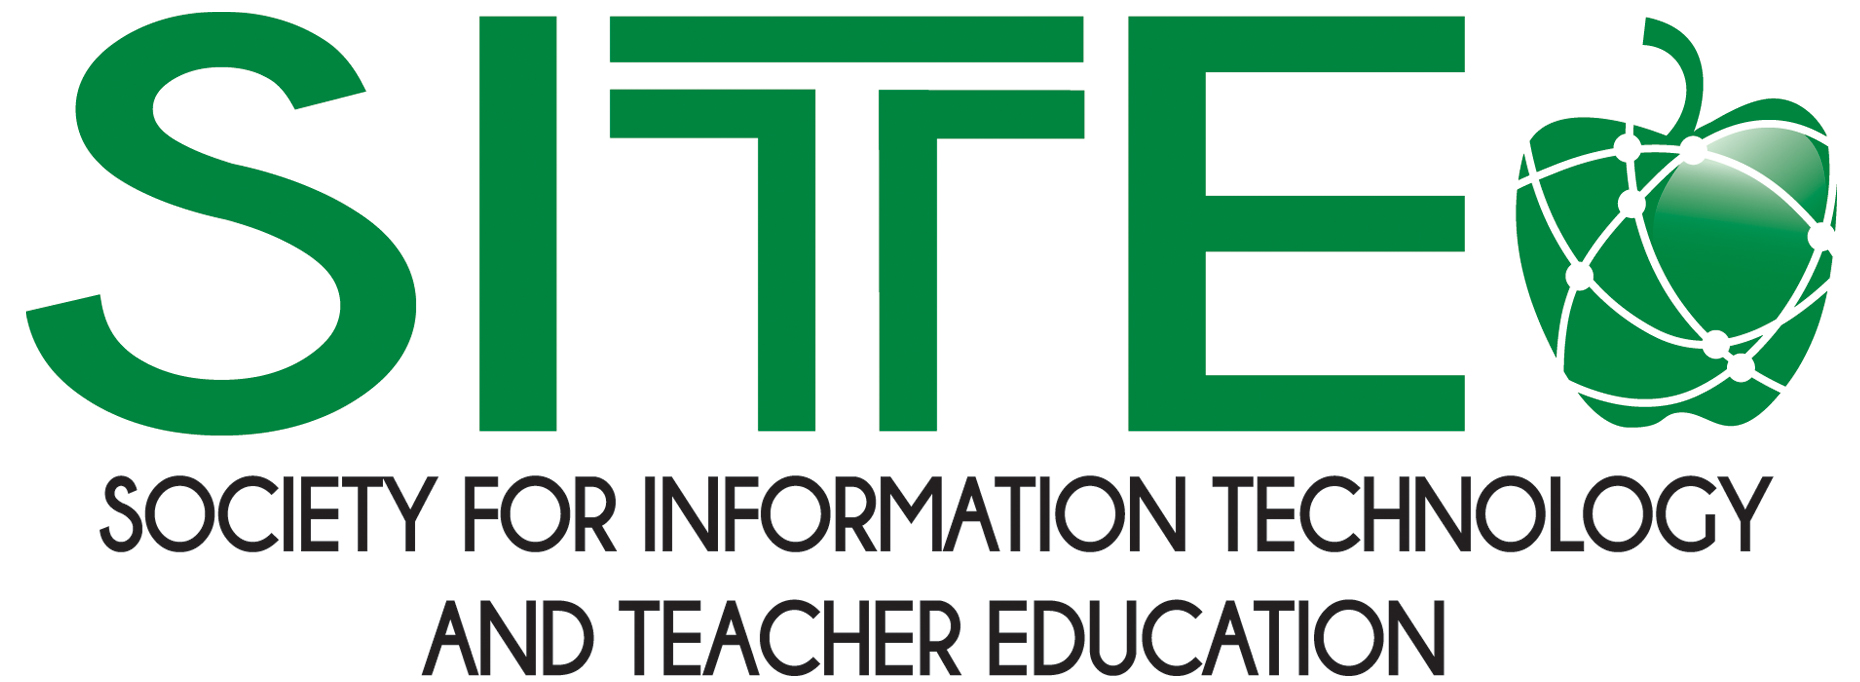 society for information technology teacher education